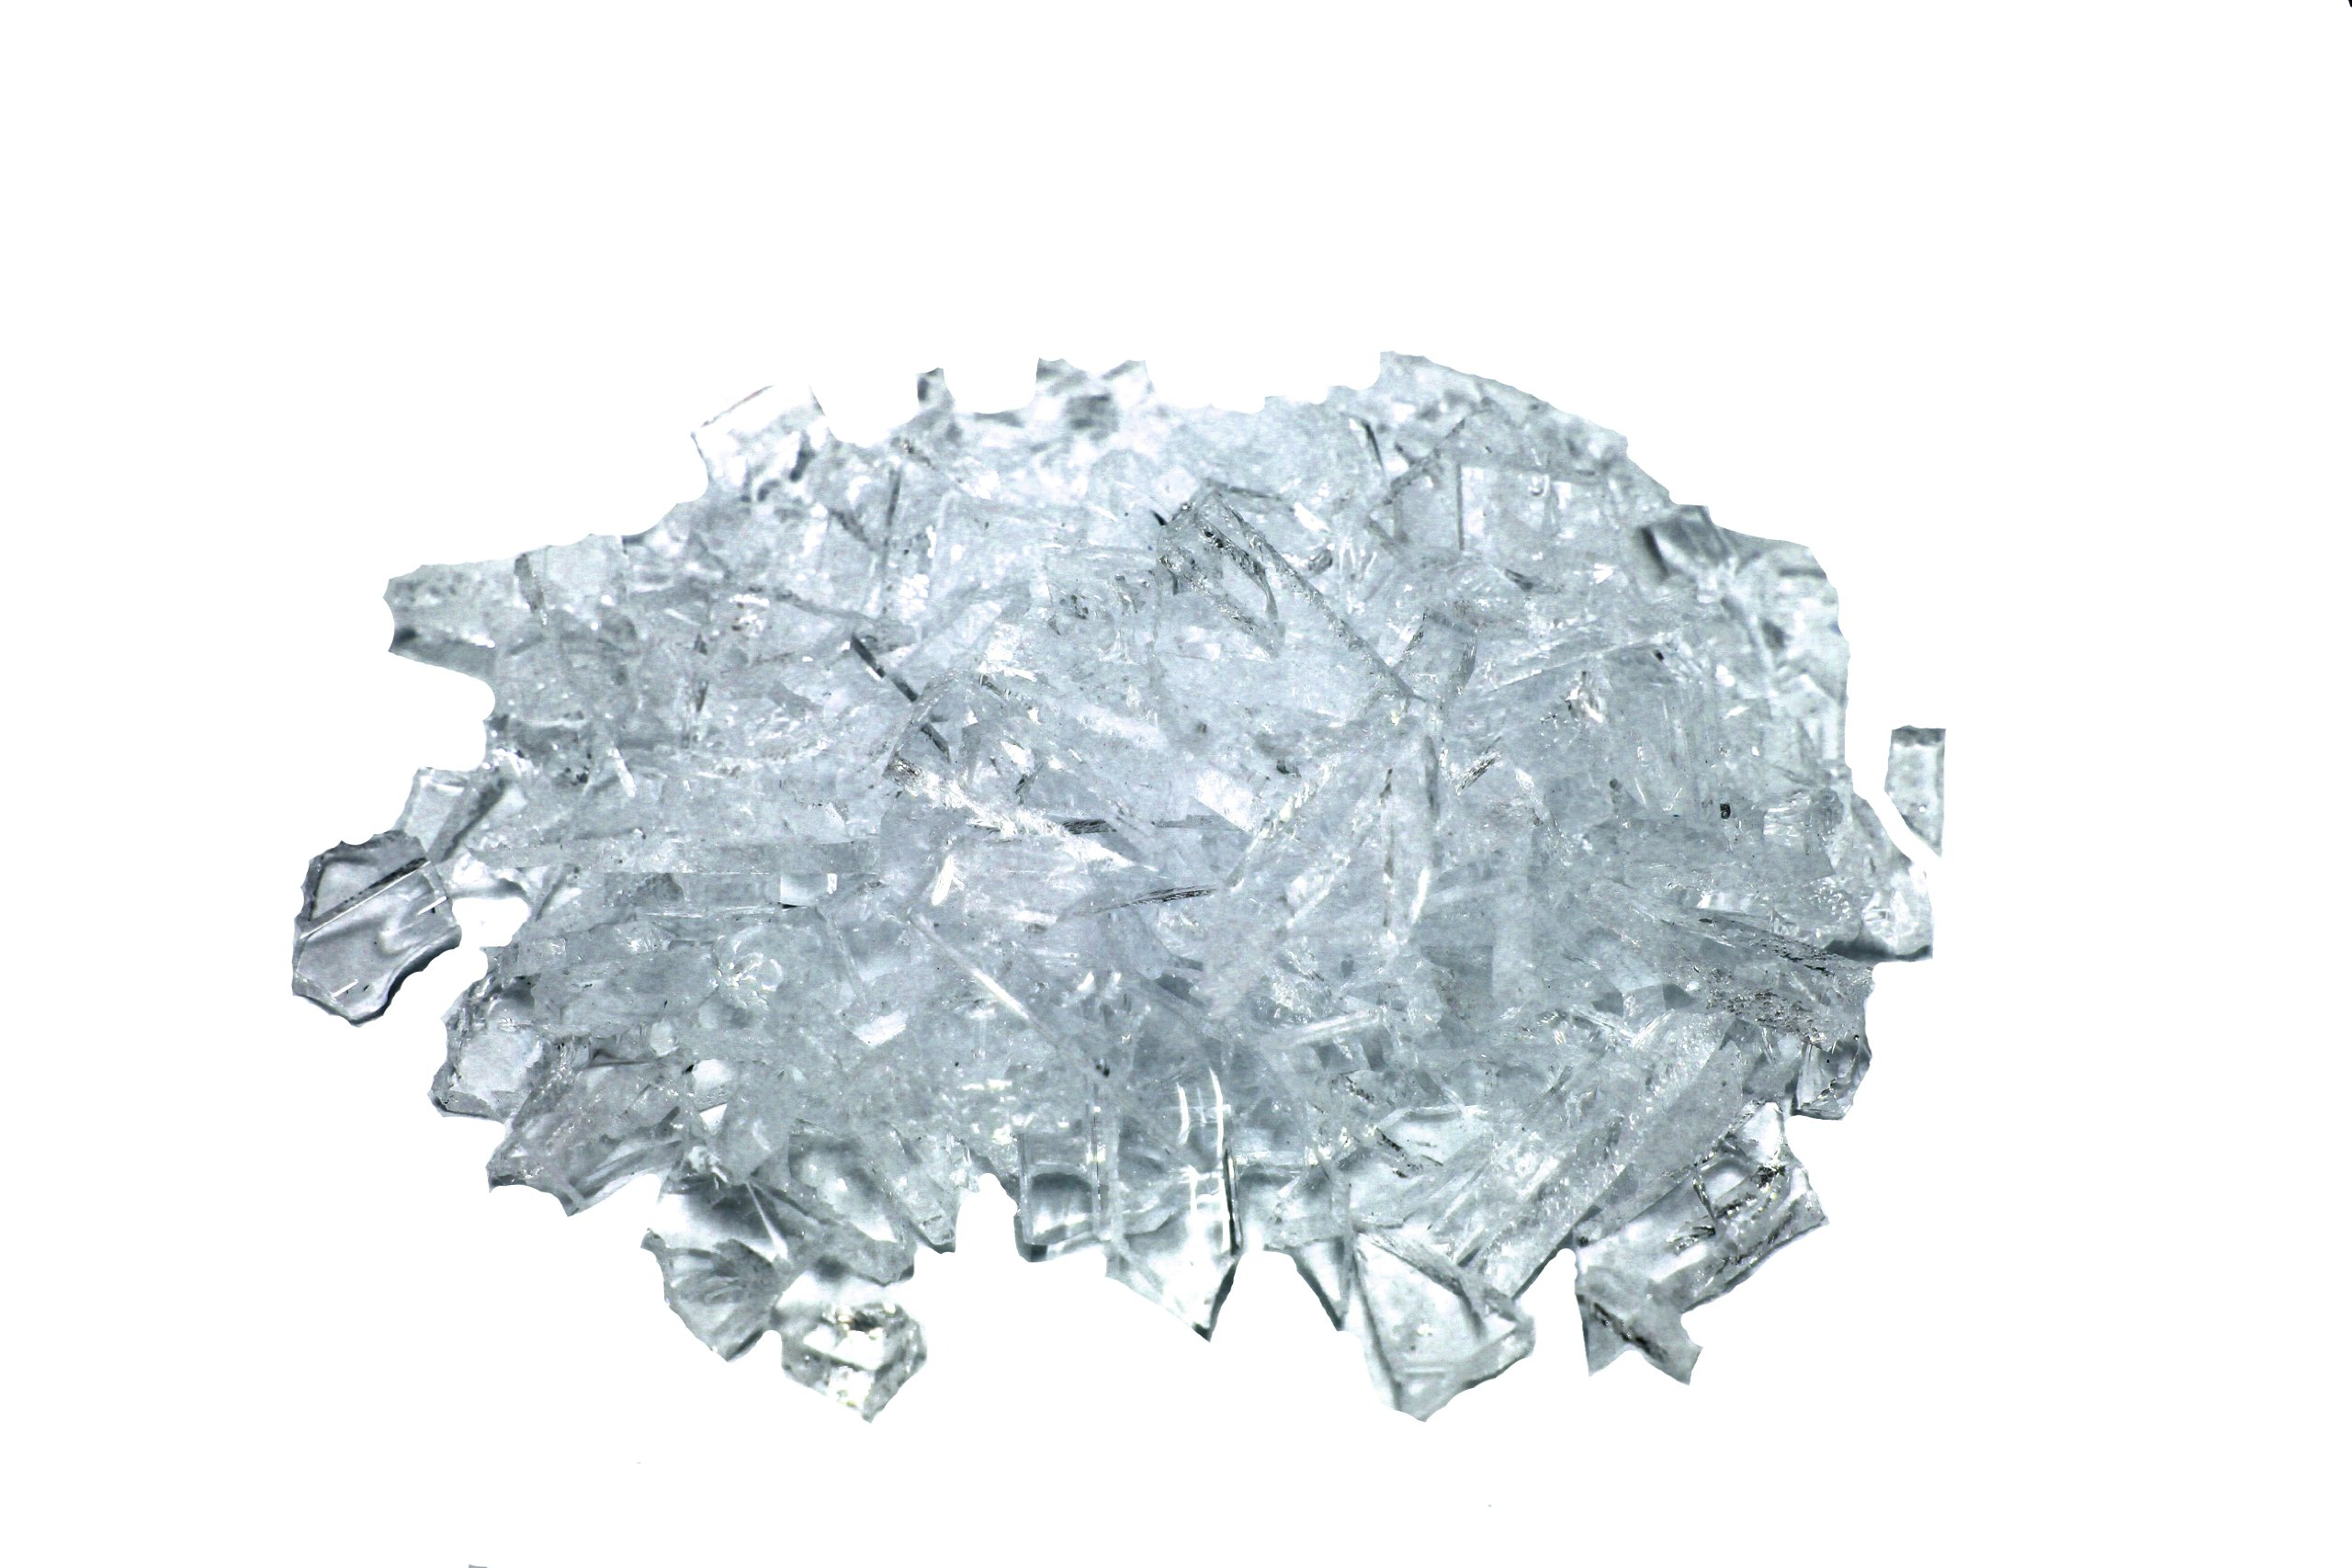 Rubber Glass Broken Pieces Professional Movie or Theatre Props 1lb Pack